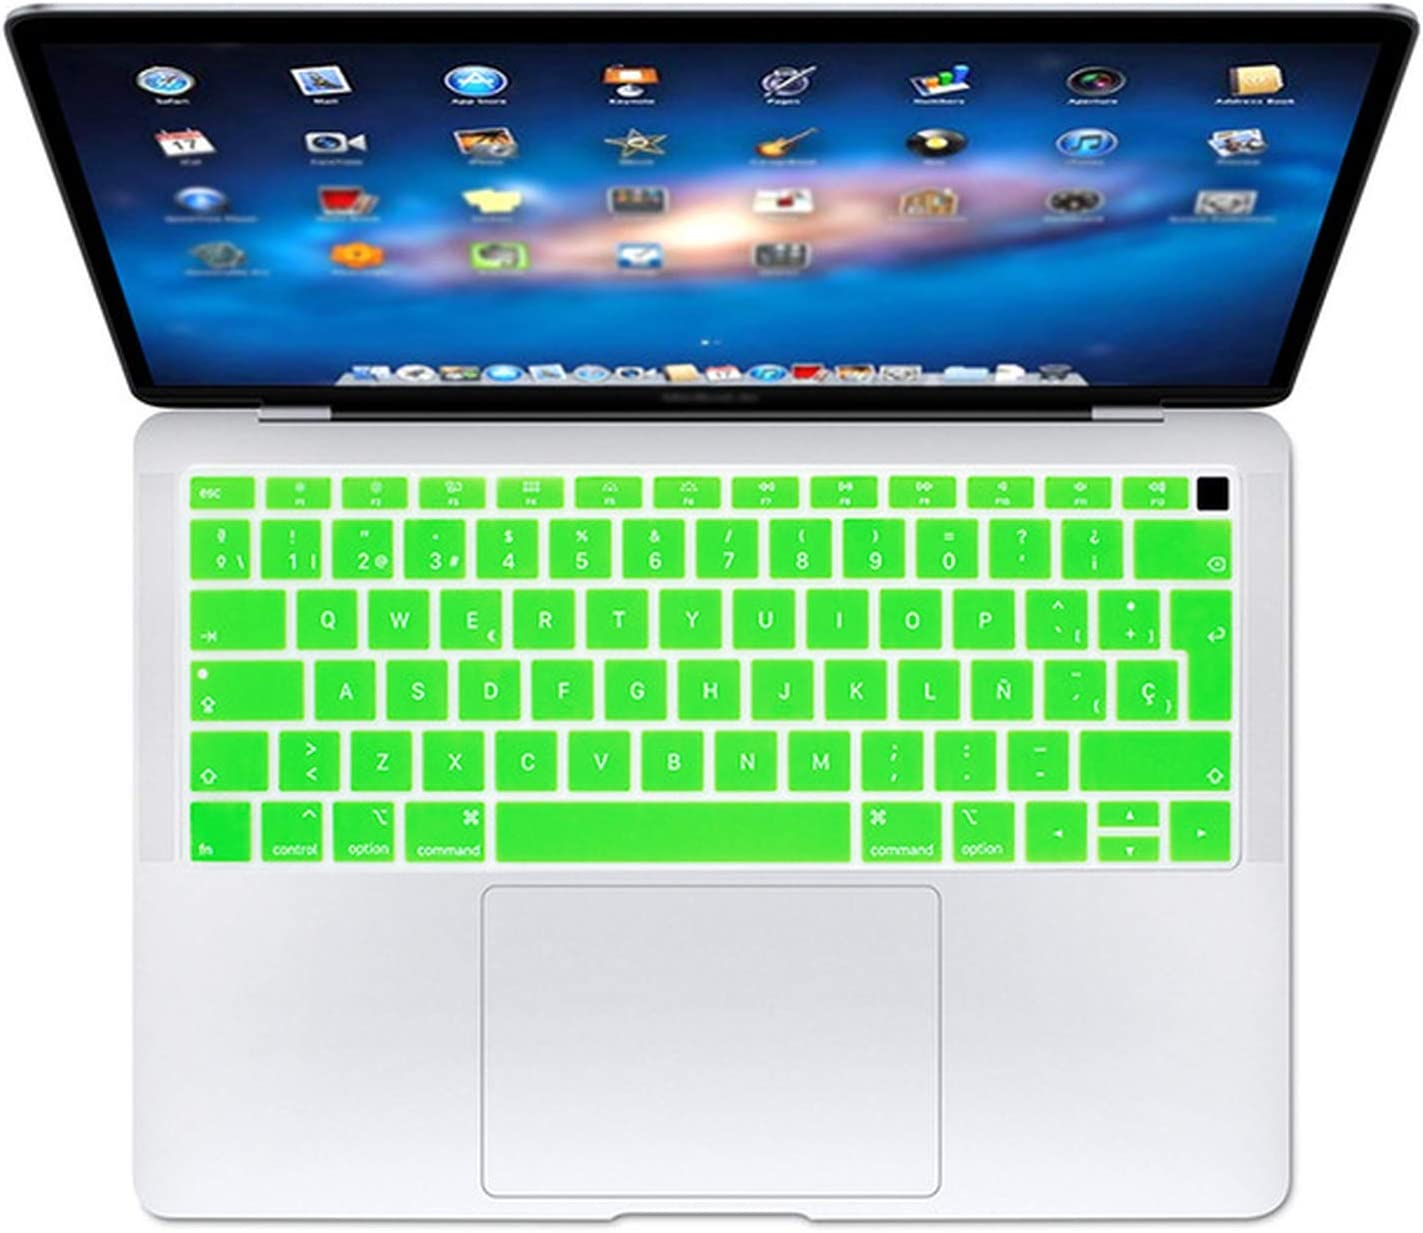 Spanish EU Teclado Keyboard Protector Cover Protective Skin for New MacBook Air 13 13.3 Inch A1932 Touch Fingerprint